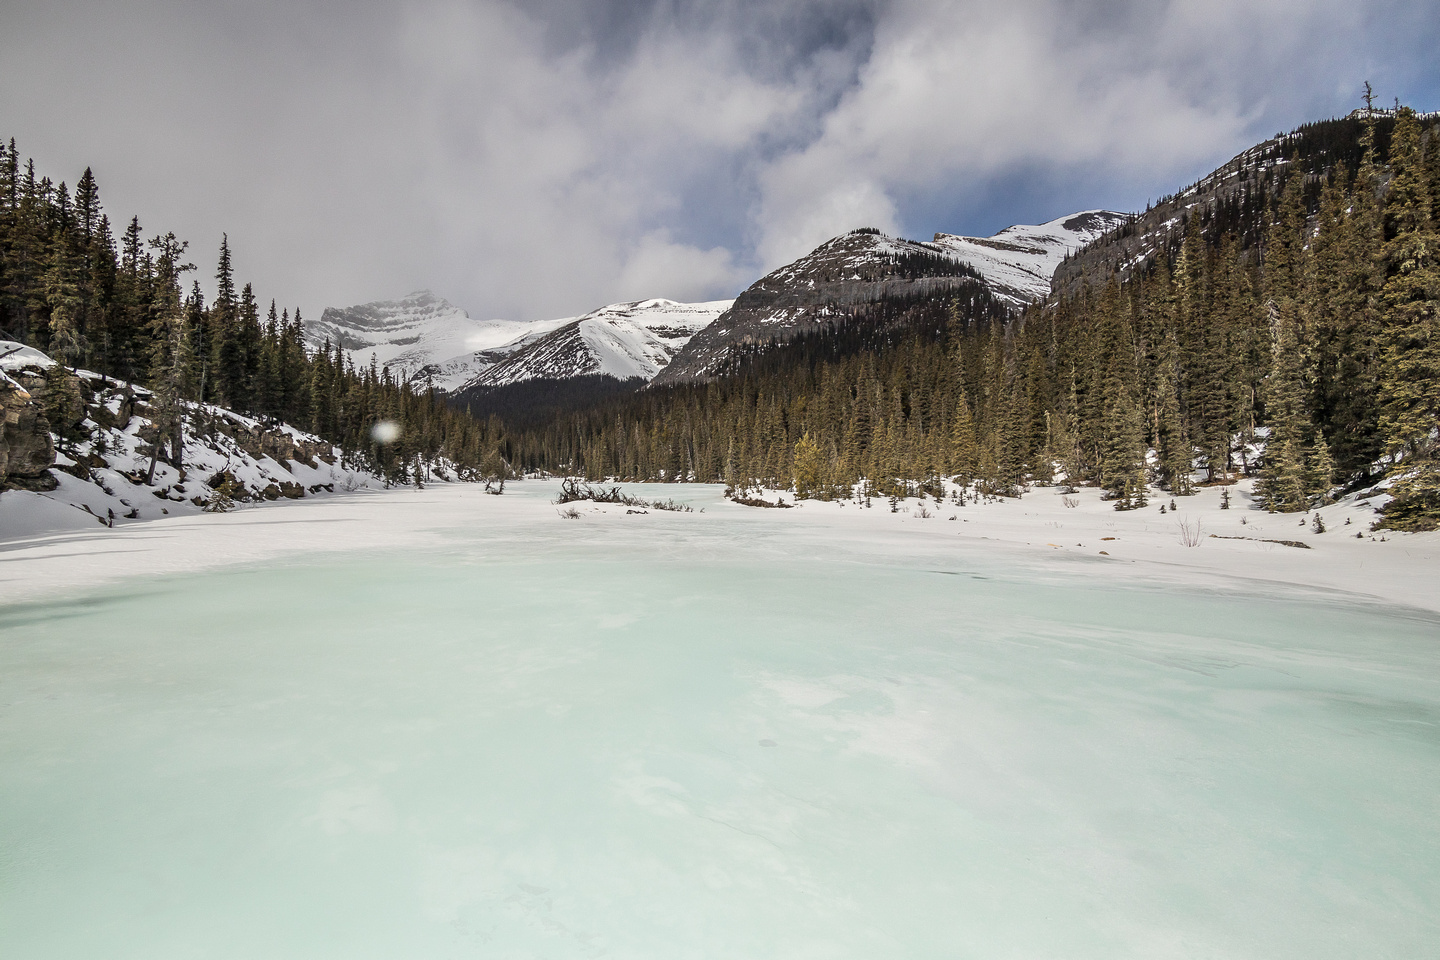 Where the creekbed widened, the water was literally piled up in sheets of blue ice.